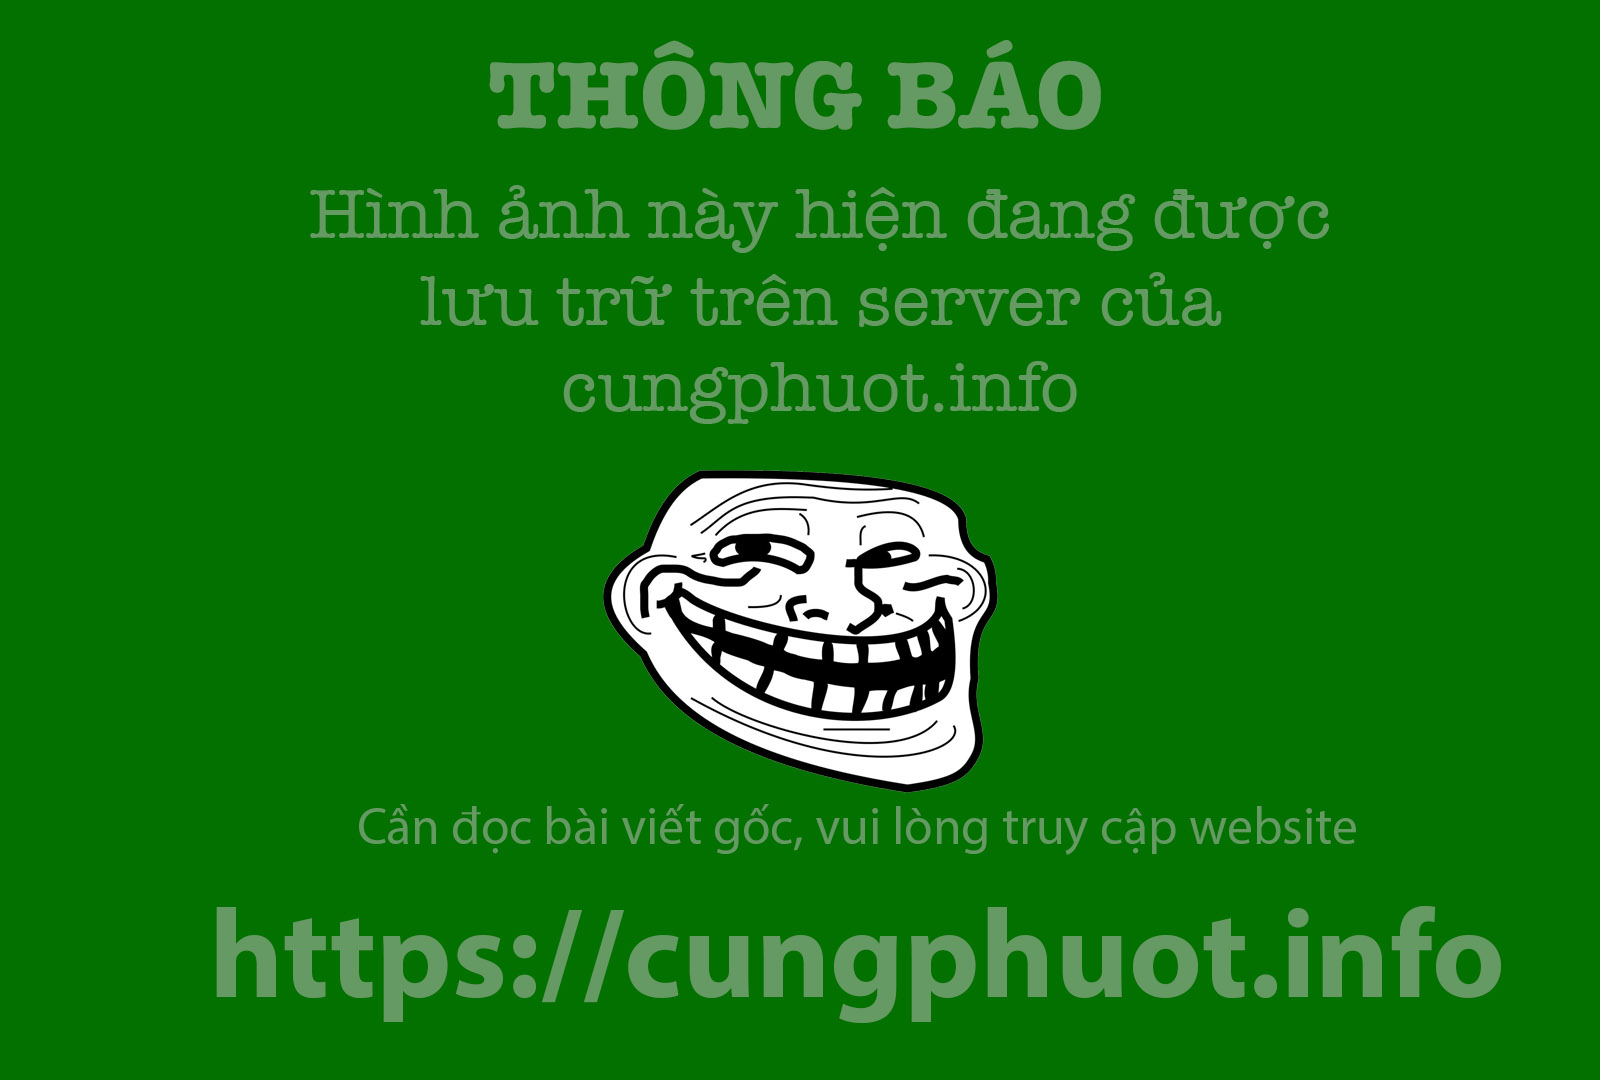 May von nui tren cong troi Muong Long hinh anh 2